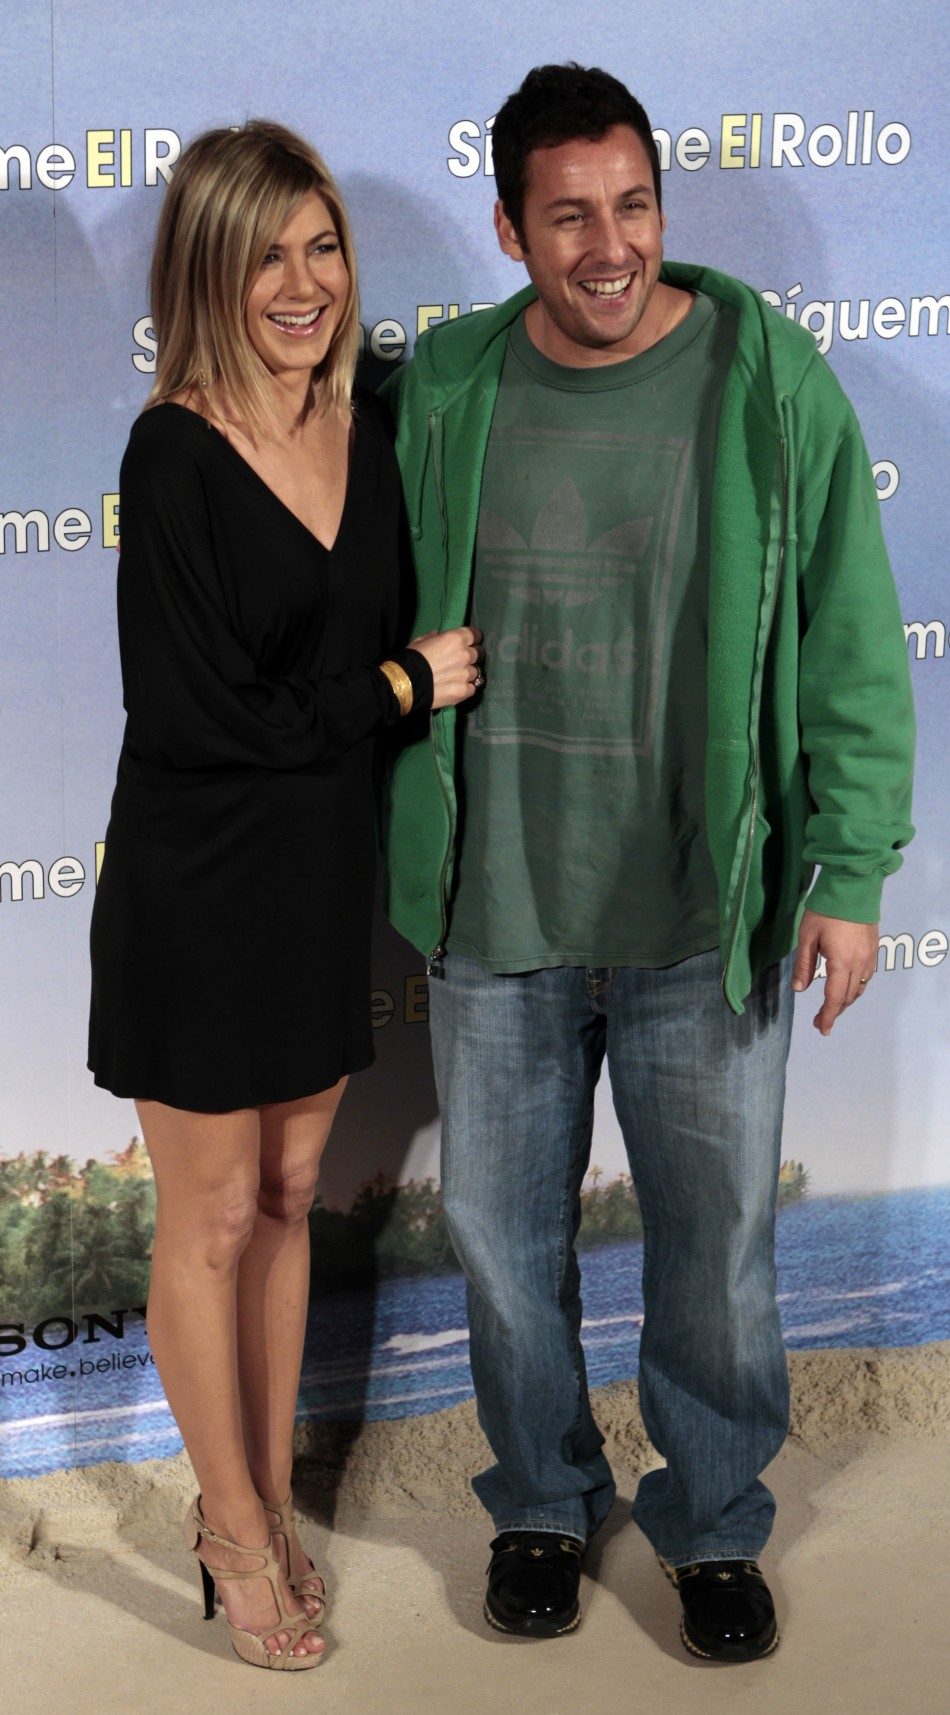 Cast members Jennifer Aniston and Adam Sandler pose to promote their movie quotSigueme el rolloquot in Madrid